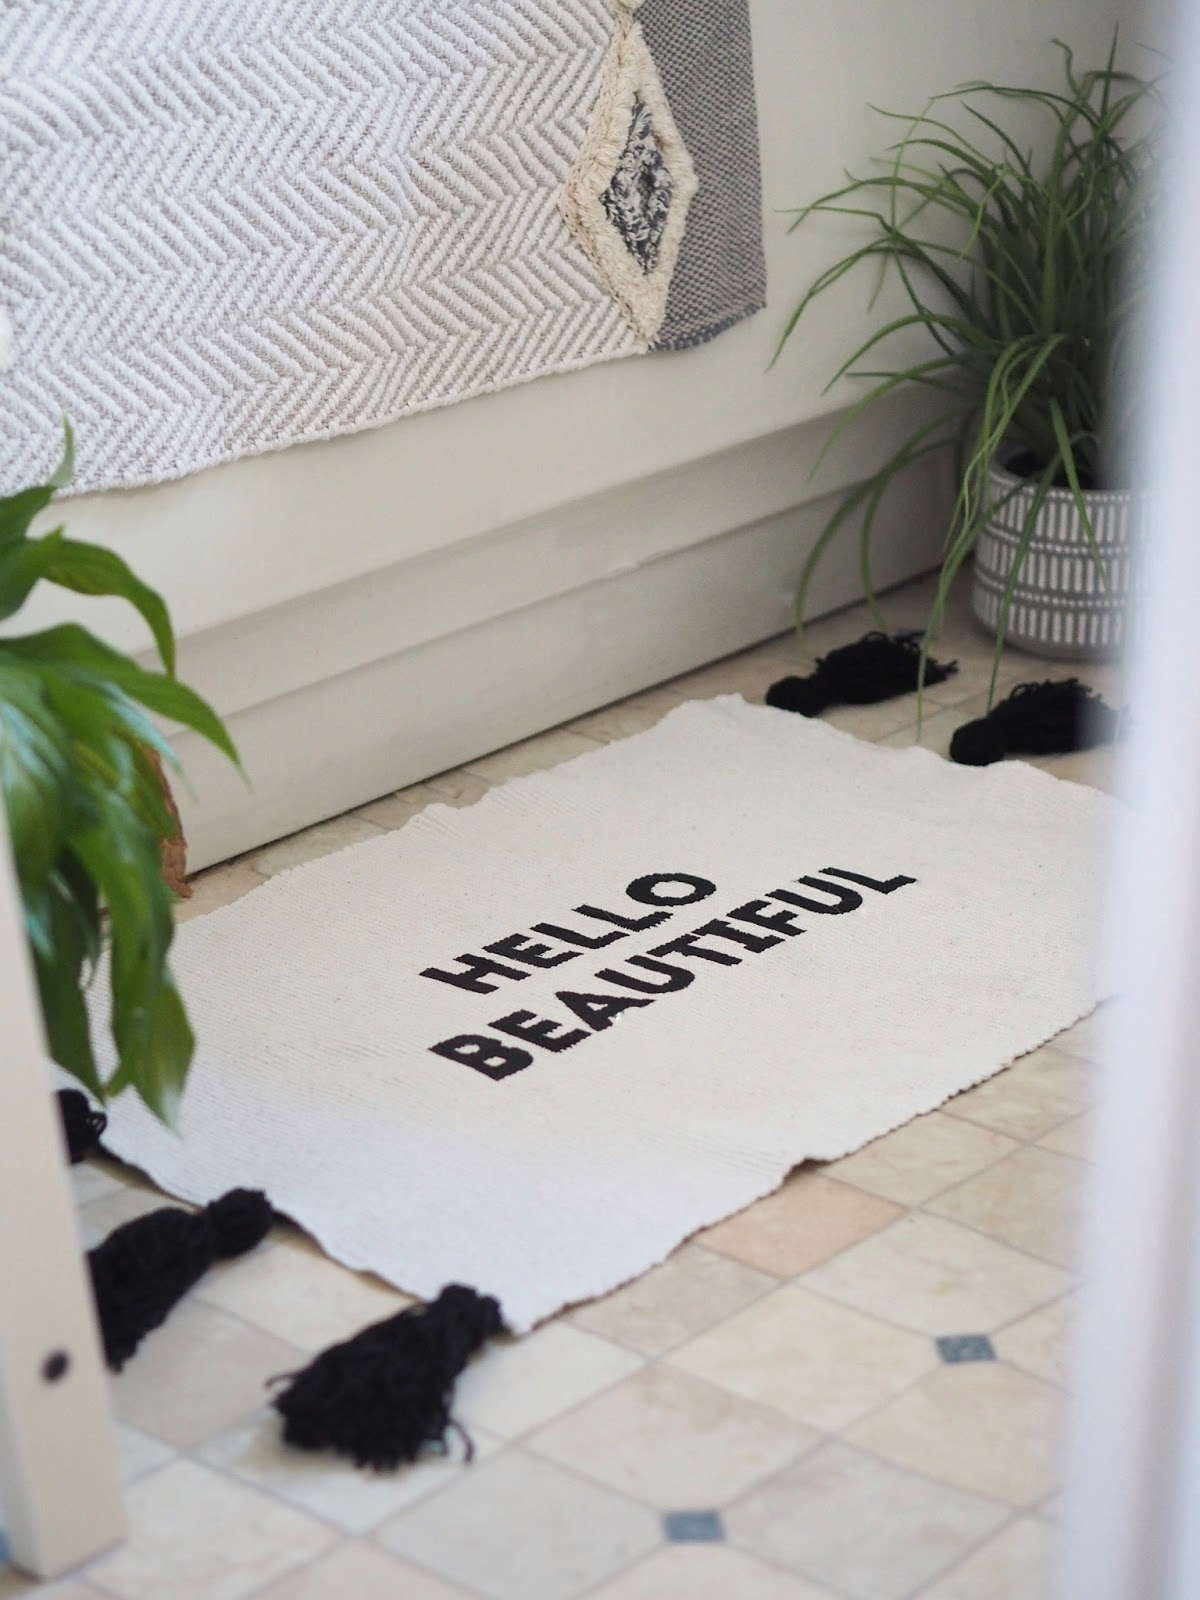 DIY slogan bath mat with fabric paint and woollen tassels from a cheap dollar store bath mat. Budget easy, quick DIY craft tutorial to create stylish bathroom decor and interiors